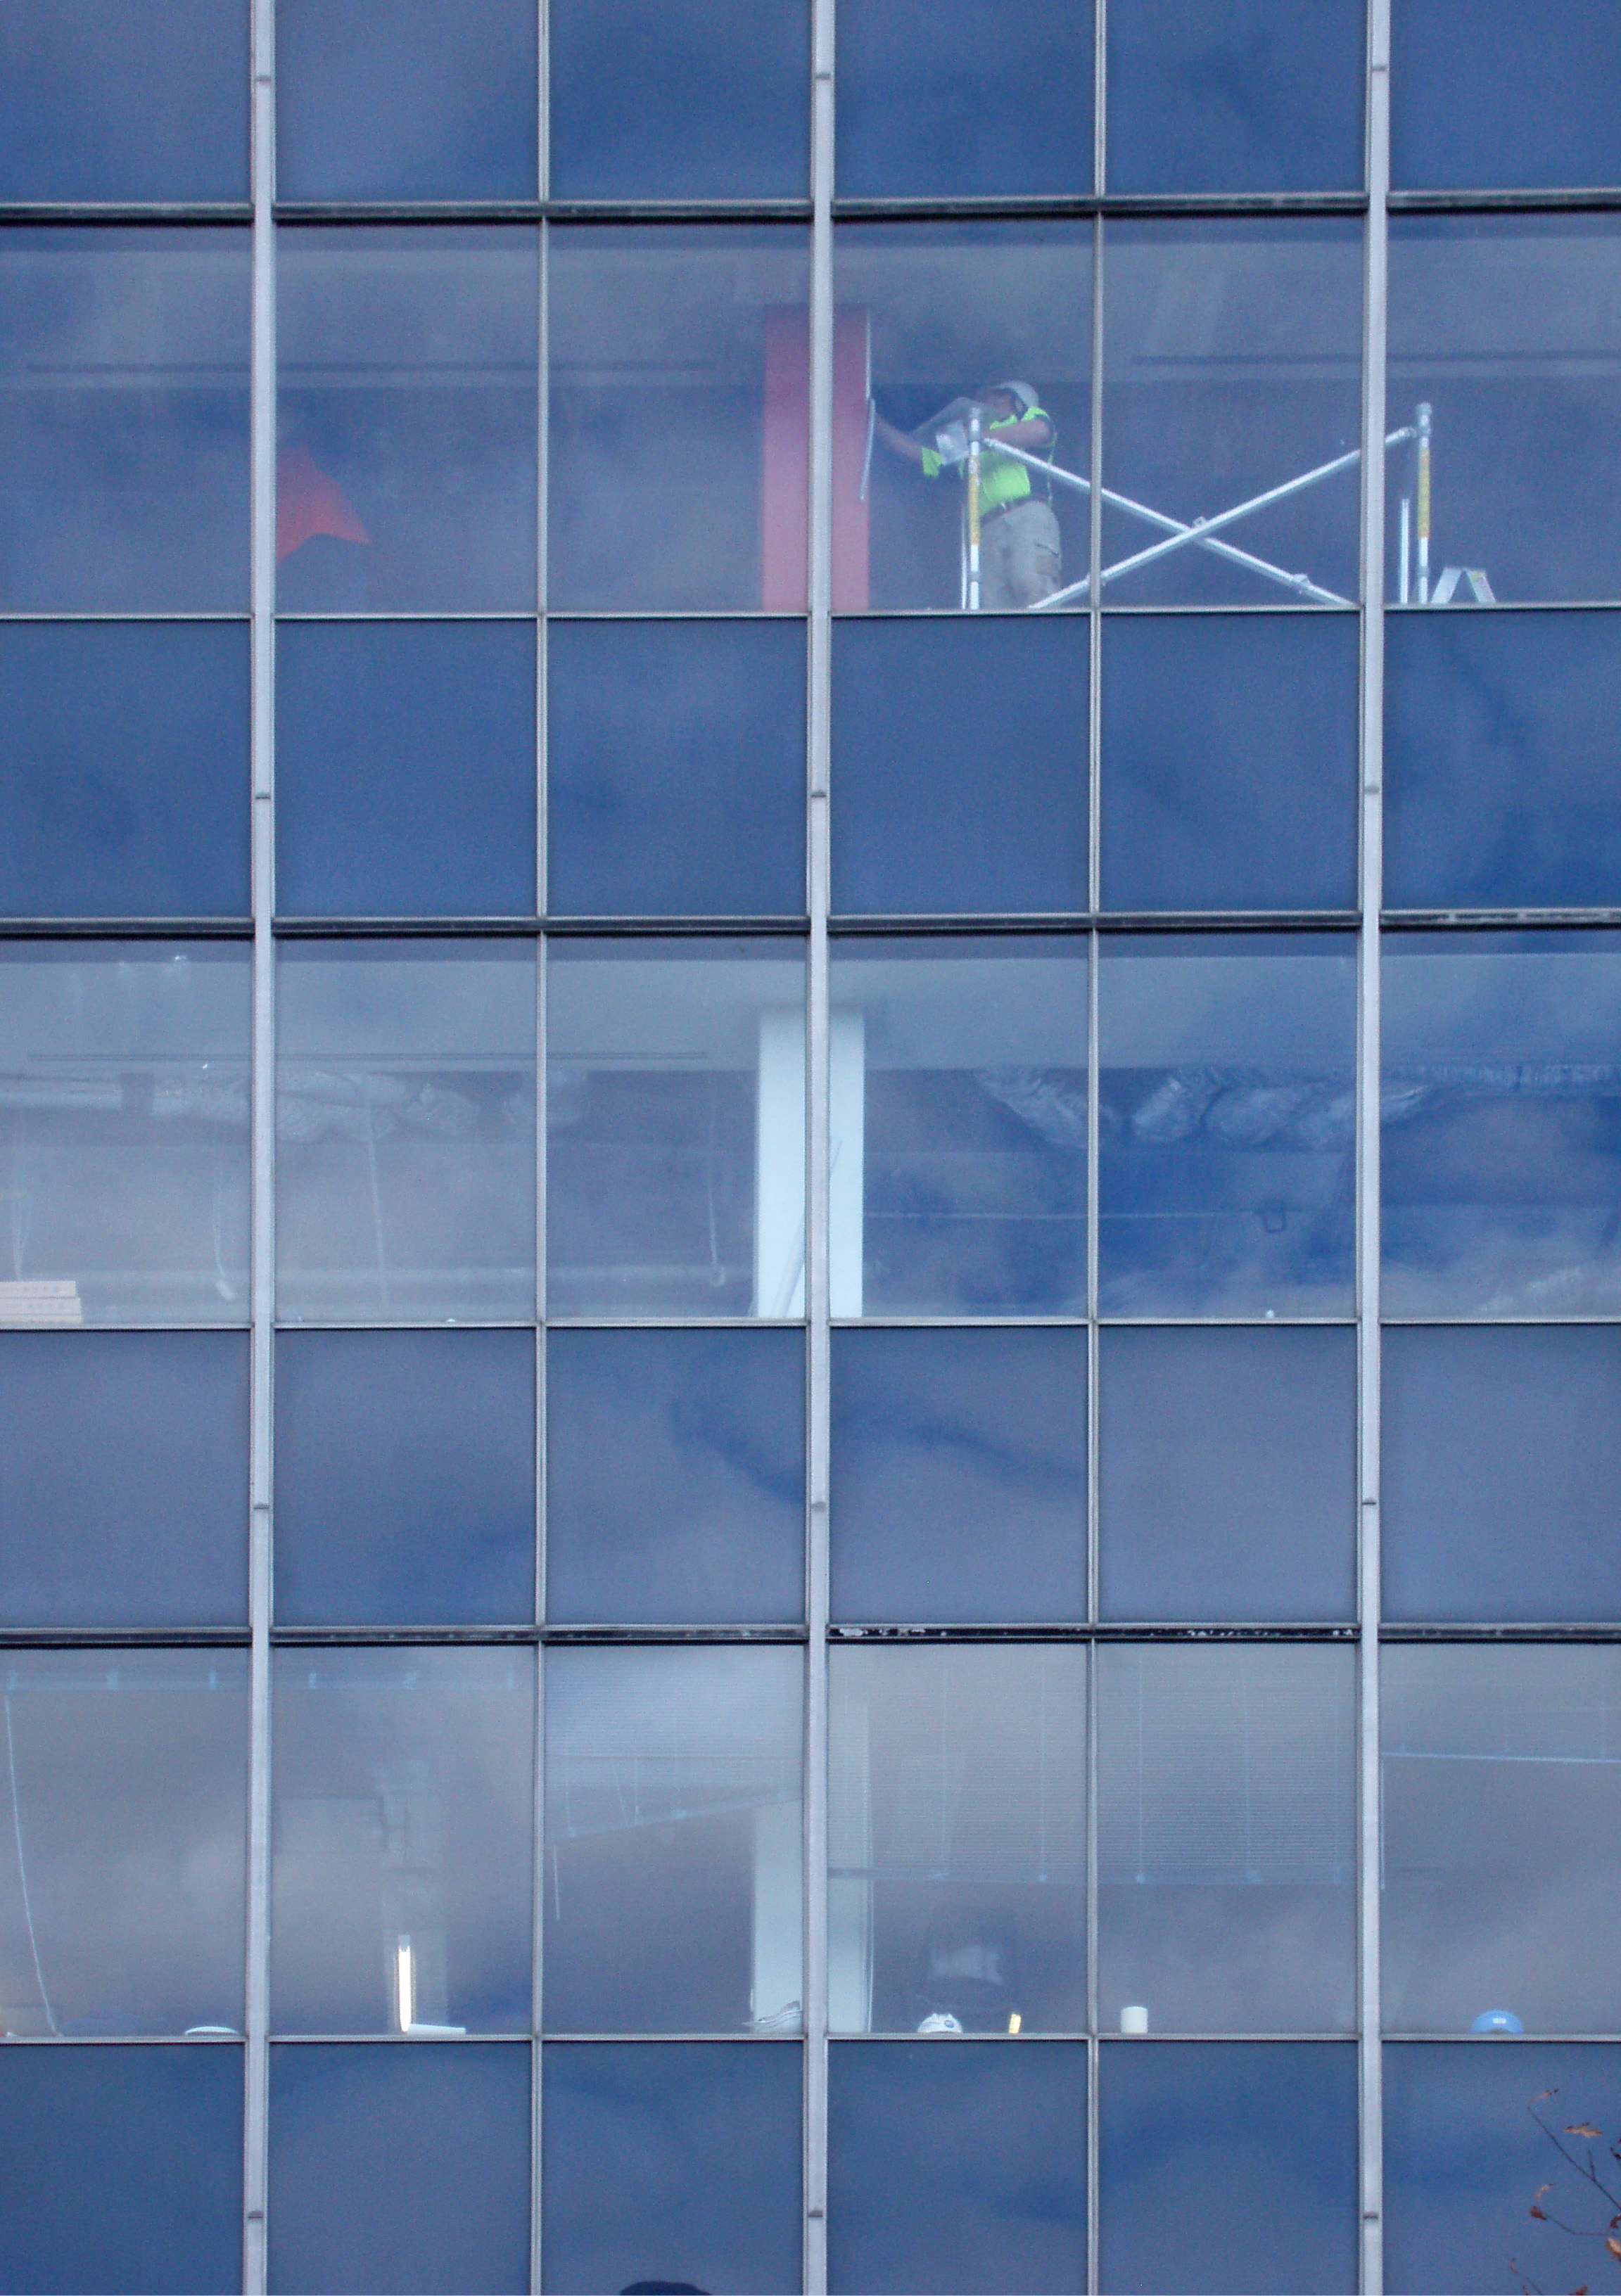 workers behind glass in a modern office building redecoration